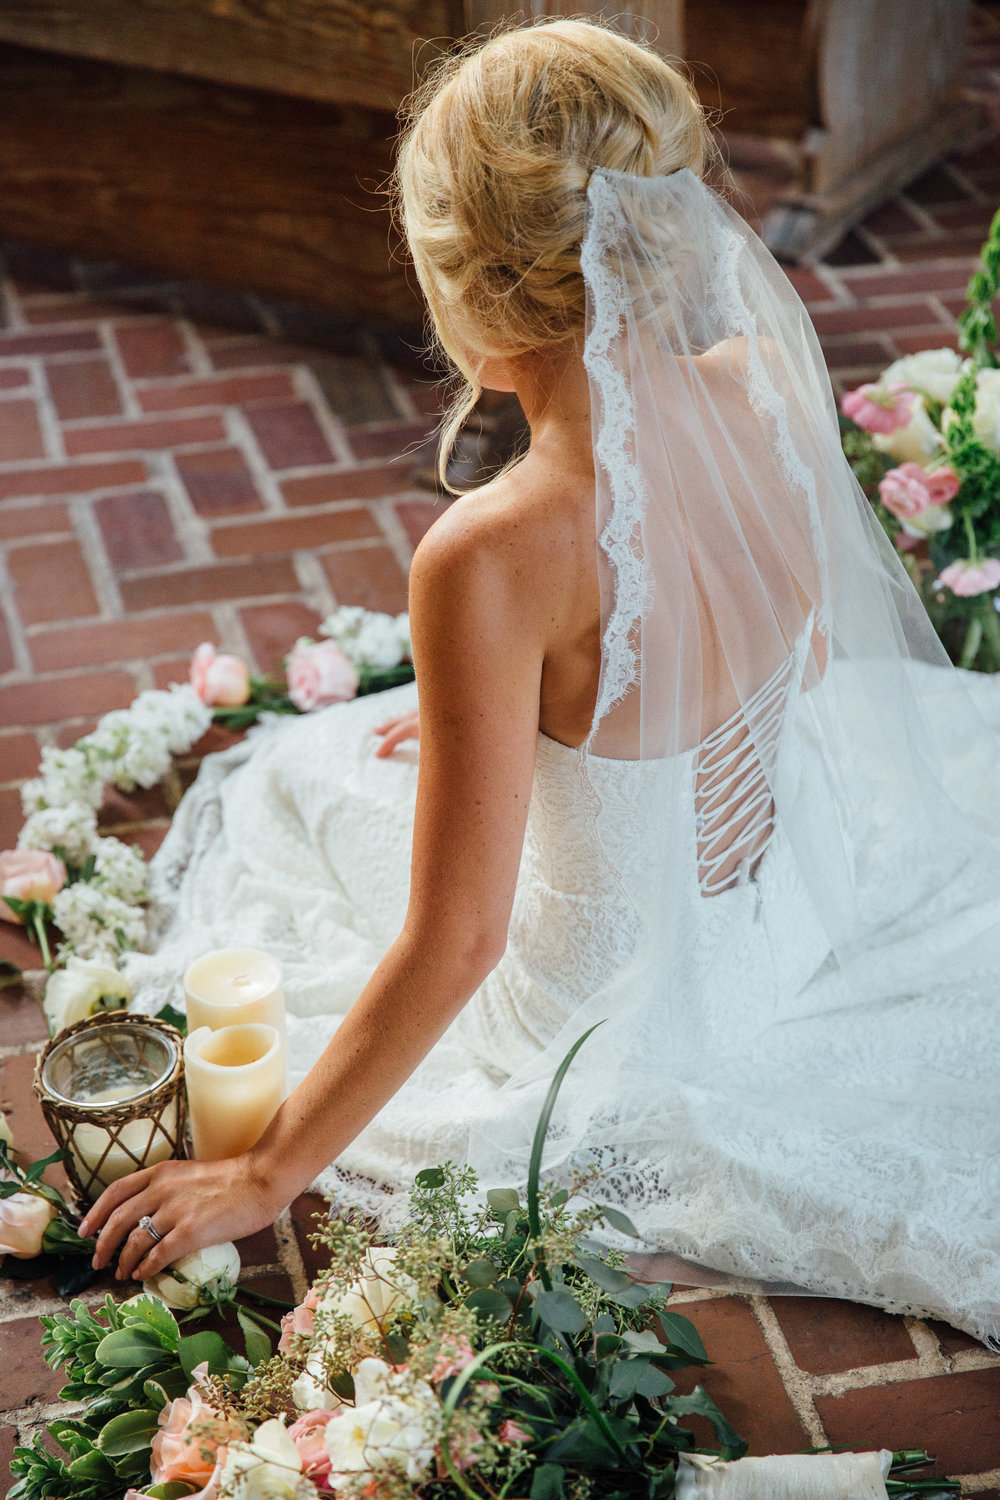 anna-benton-photography-savannah-bridal-boutique-ivory-and-beau-bridal-boutique-ti-adora-7552-lace-wedding-dress-jaclyn-jordan-anne-veil-southern-wedding-savannah-wedding-coastal-wedidng-savannah-wedding-planner-savannah-florist-savannah-weddings-9.jpg